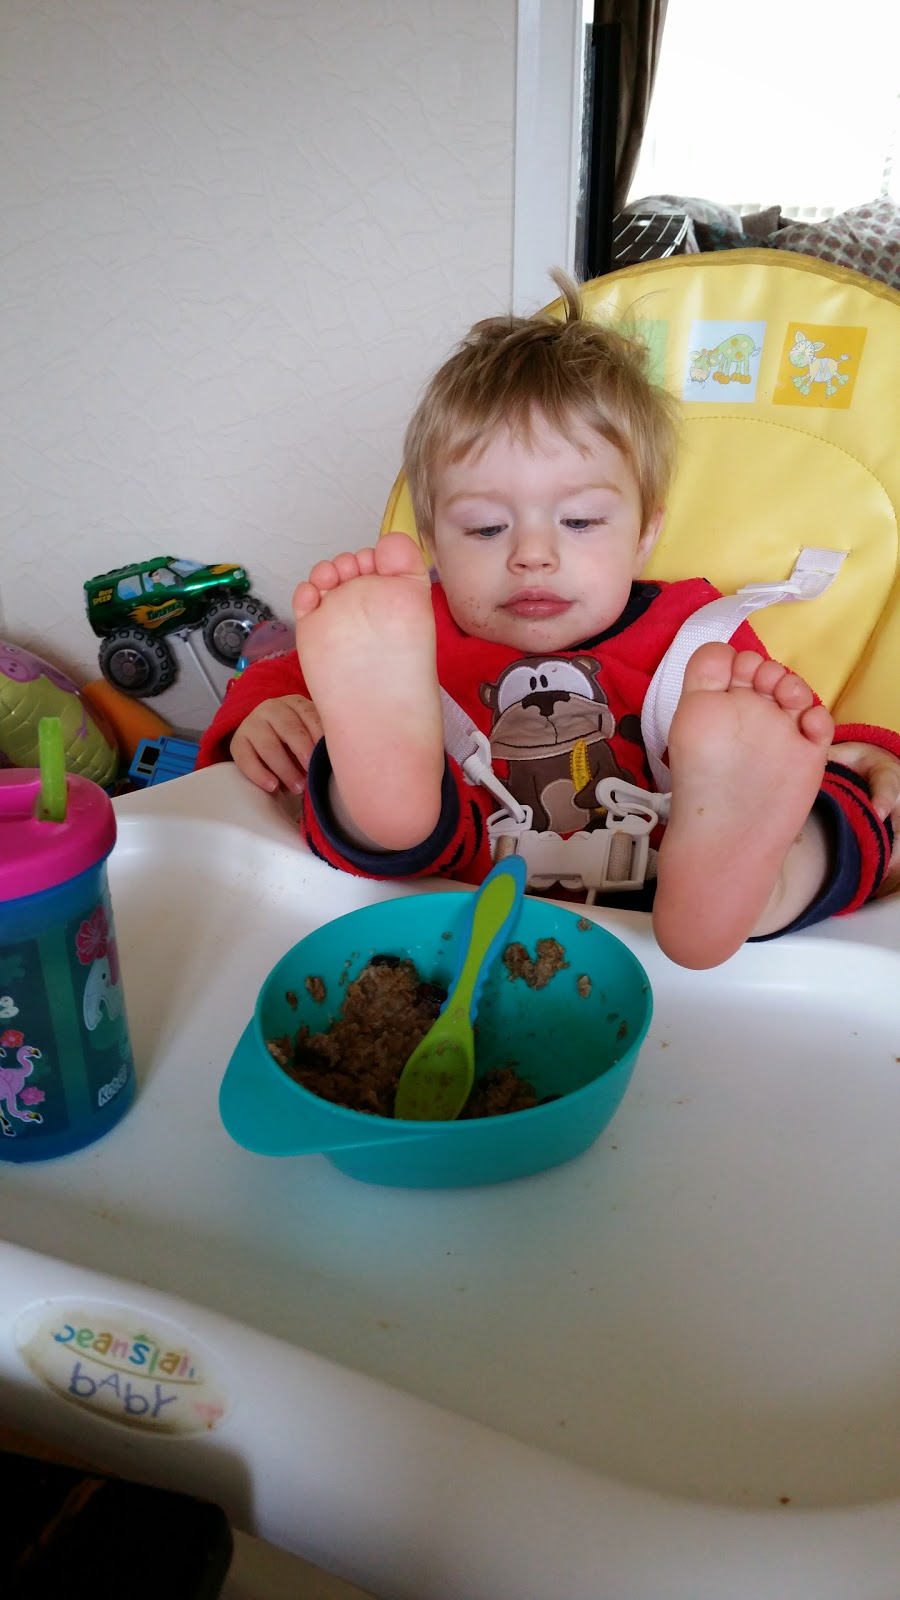 Why won't my toddler eat? – living with a fussy eater